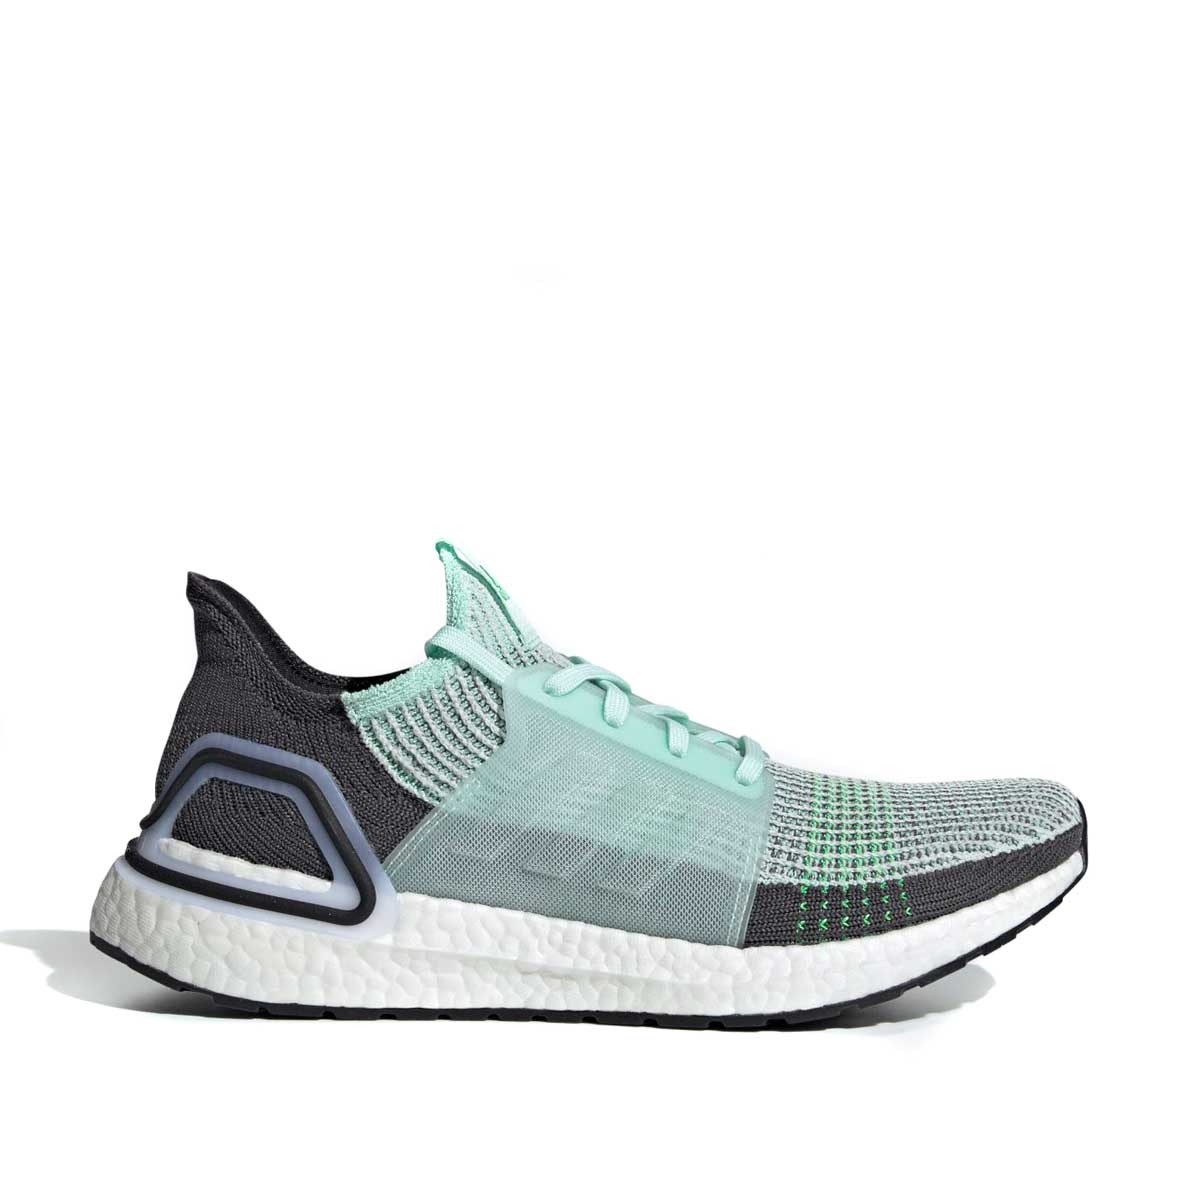 8ecd80adde871 adidas UltraBOOST 19 (ICE MINT ICE MINT GREY SIX) (Adidas ultra boost 19)